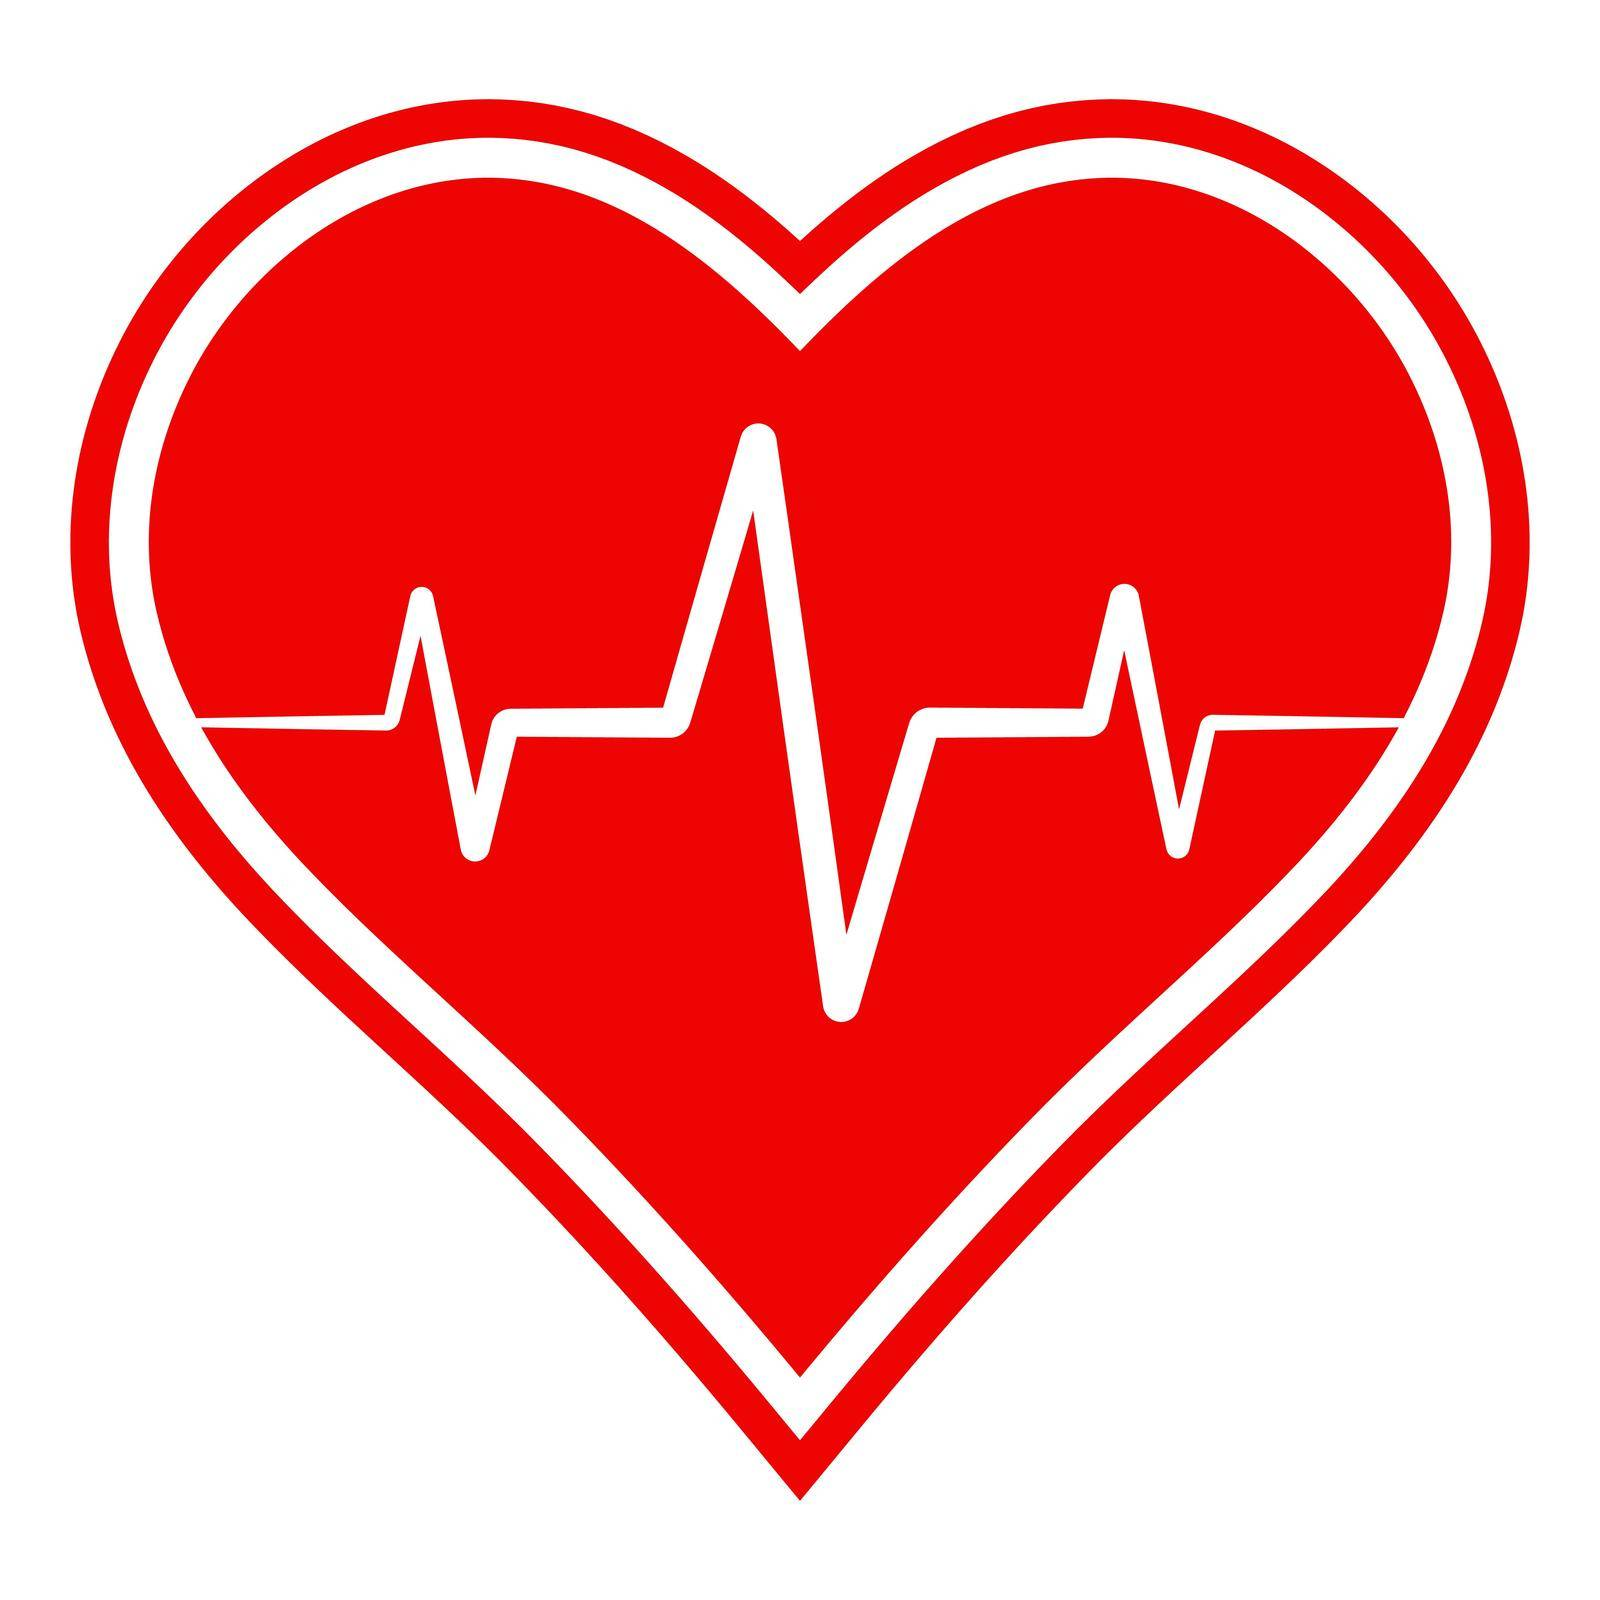 icon health sign, heart with heartbeat, vector sign symbol healthy lifestyle and recovery from diseases by koksikoks